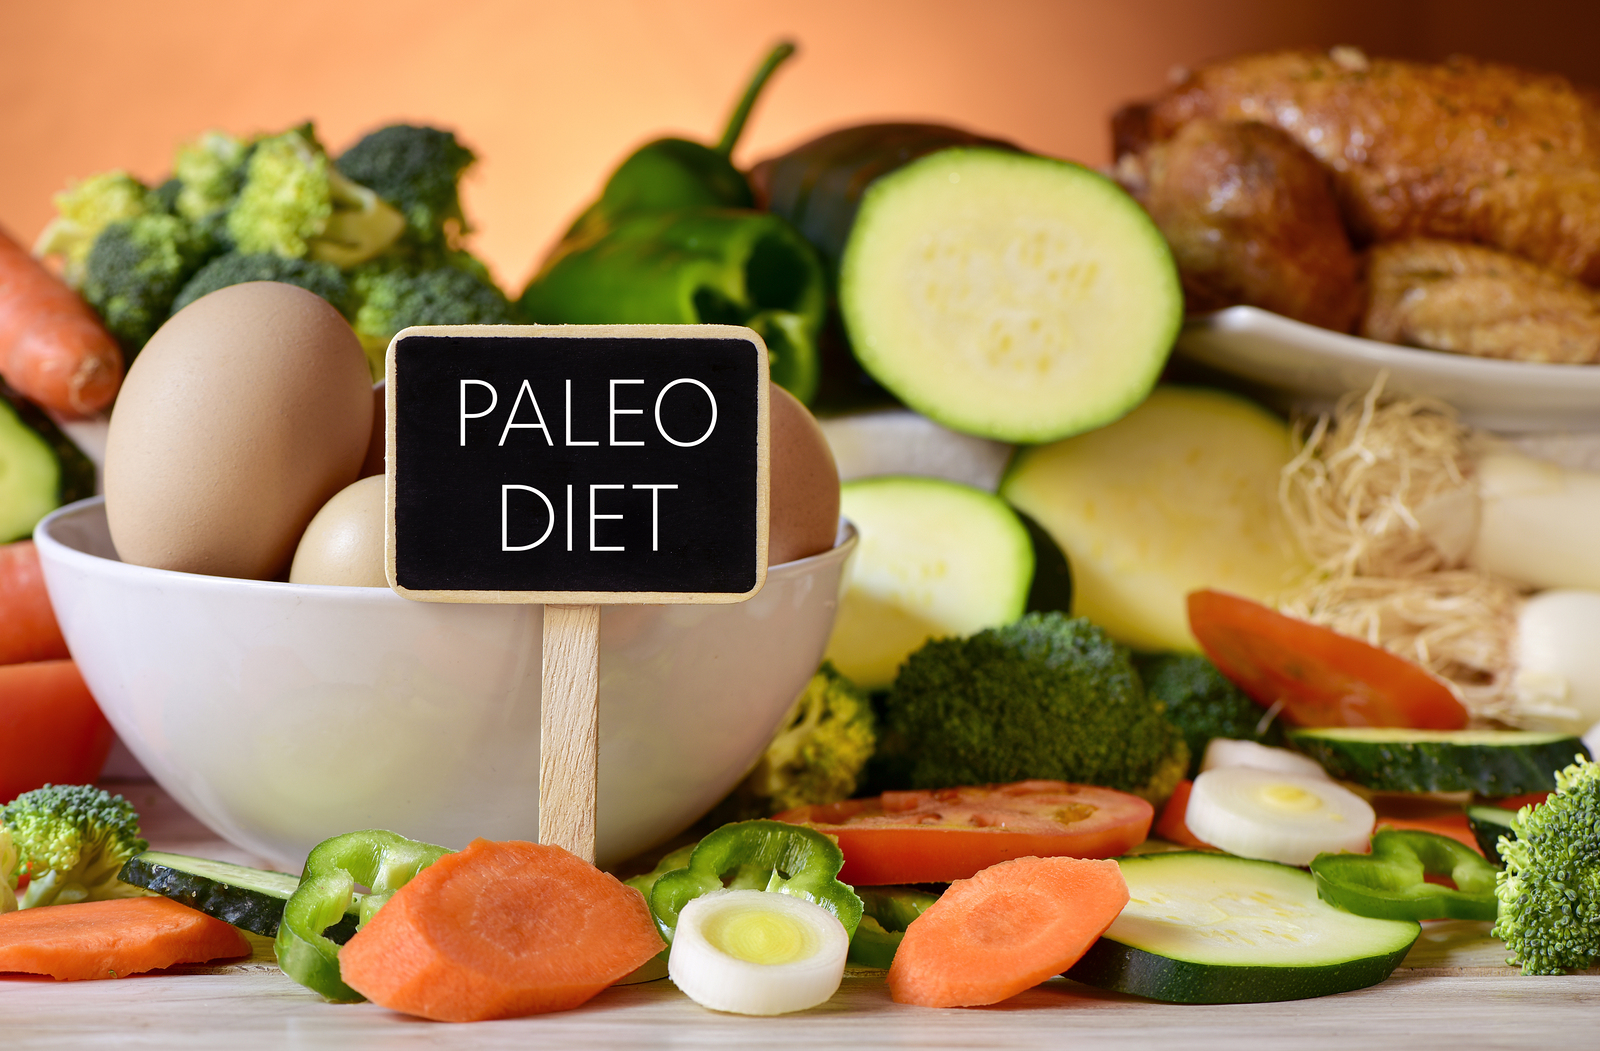 Paleo Diet Foods For Weight Loss